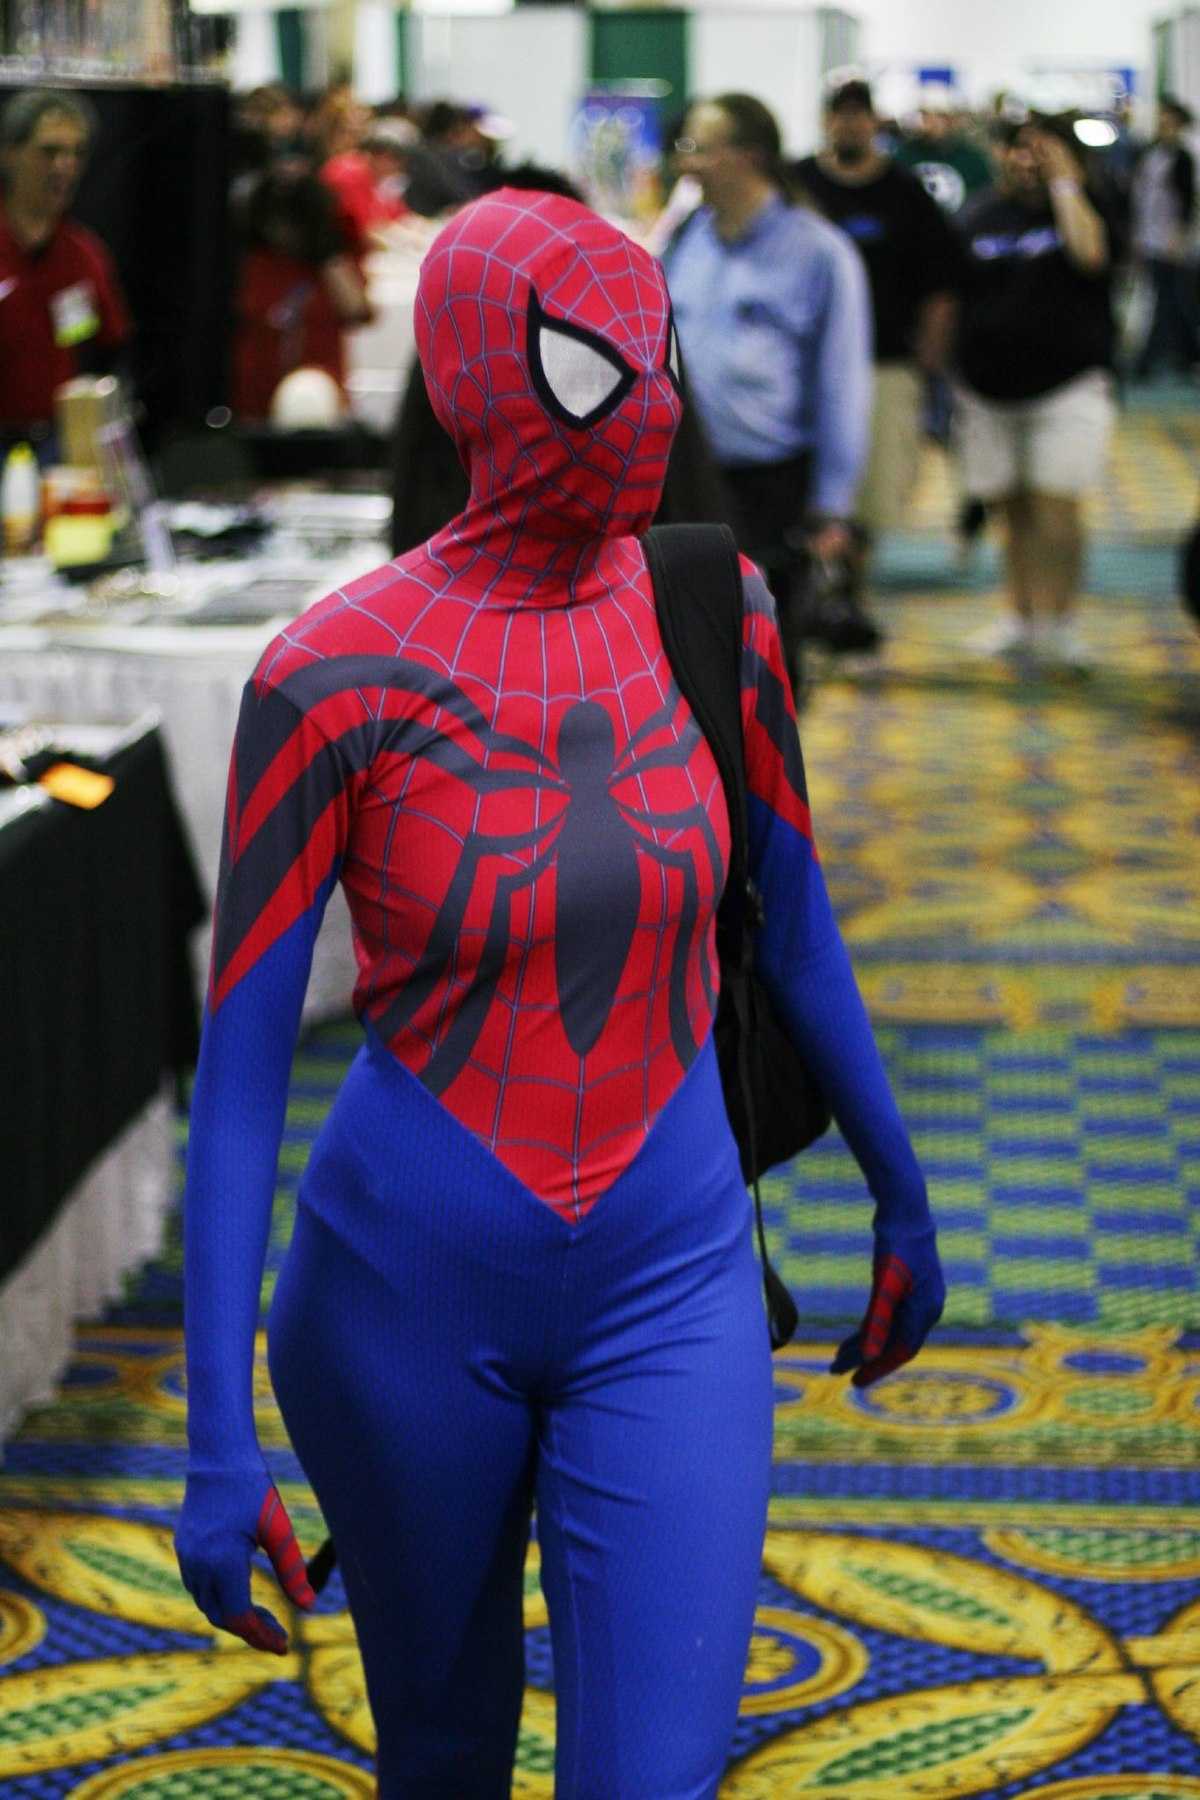 Spider Costumes For Dogs For Sale